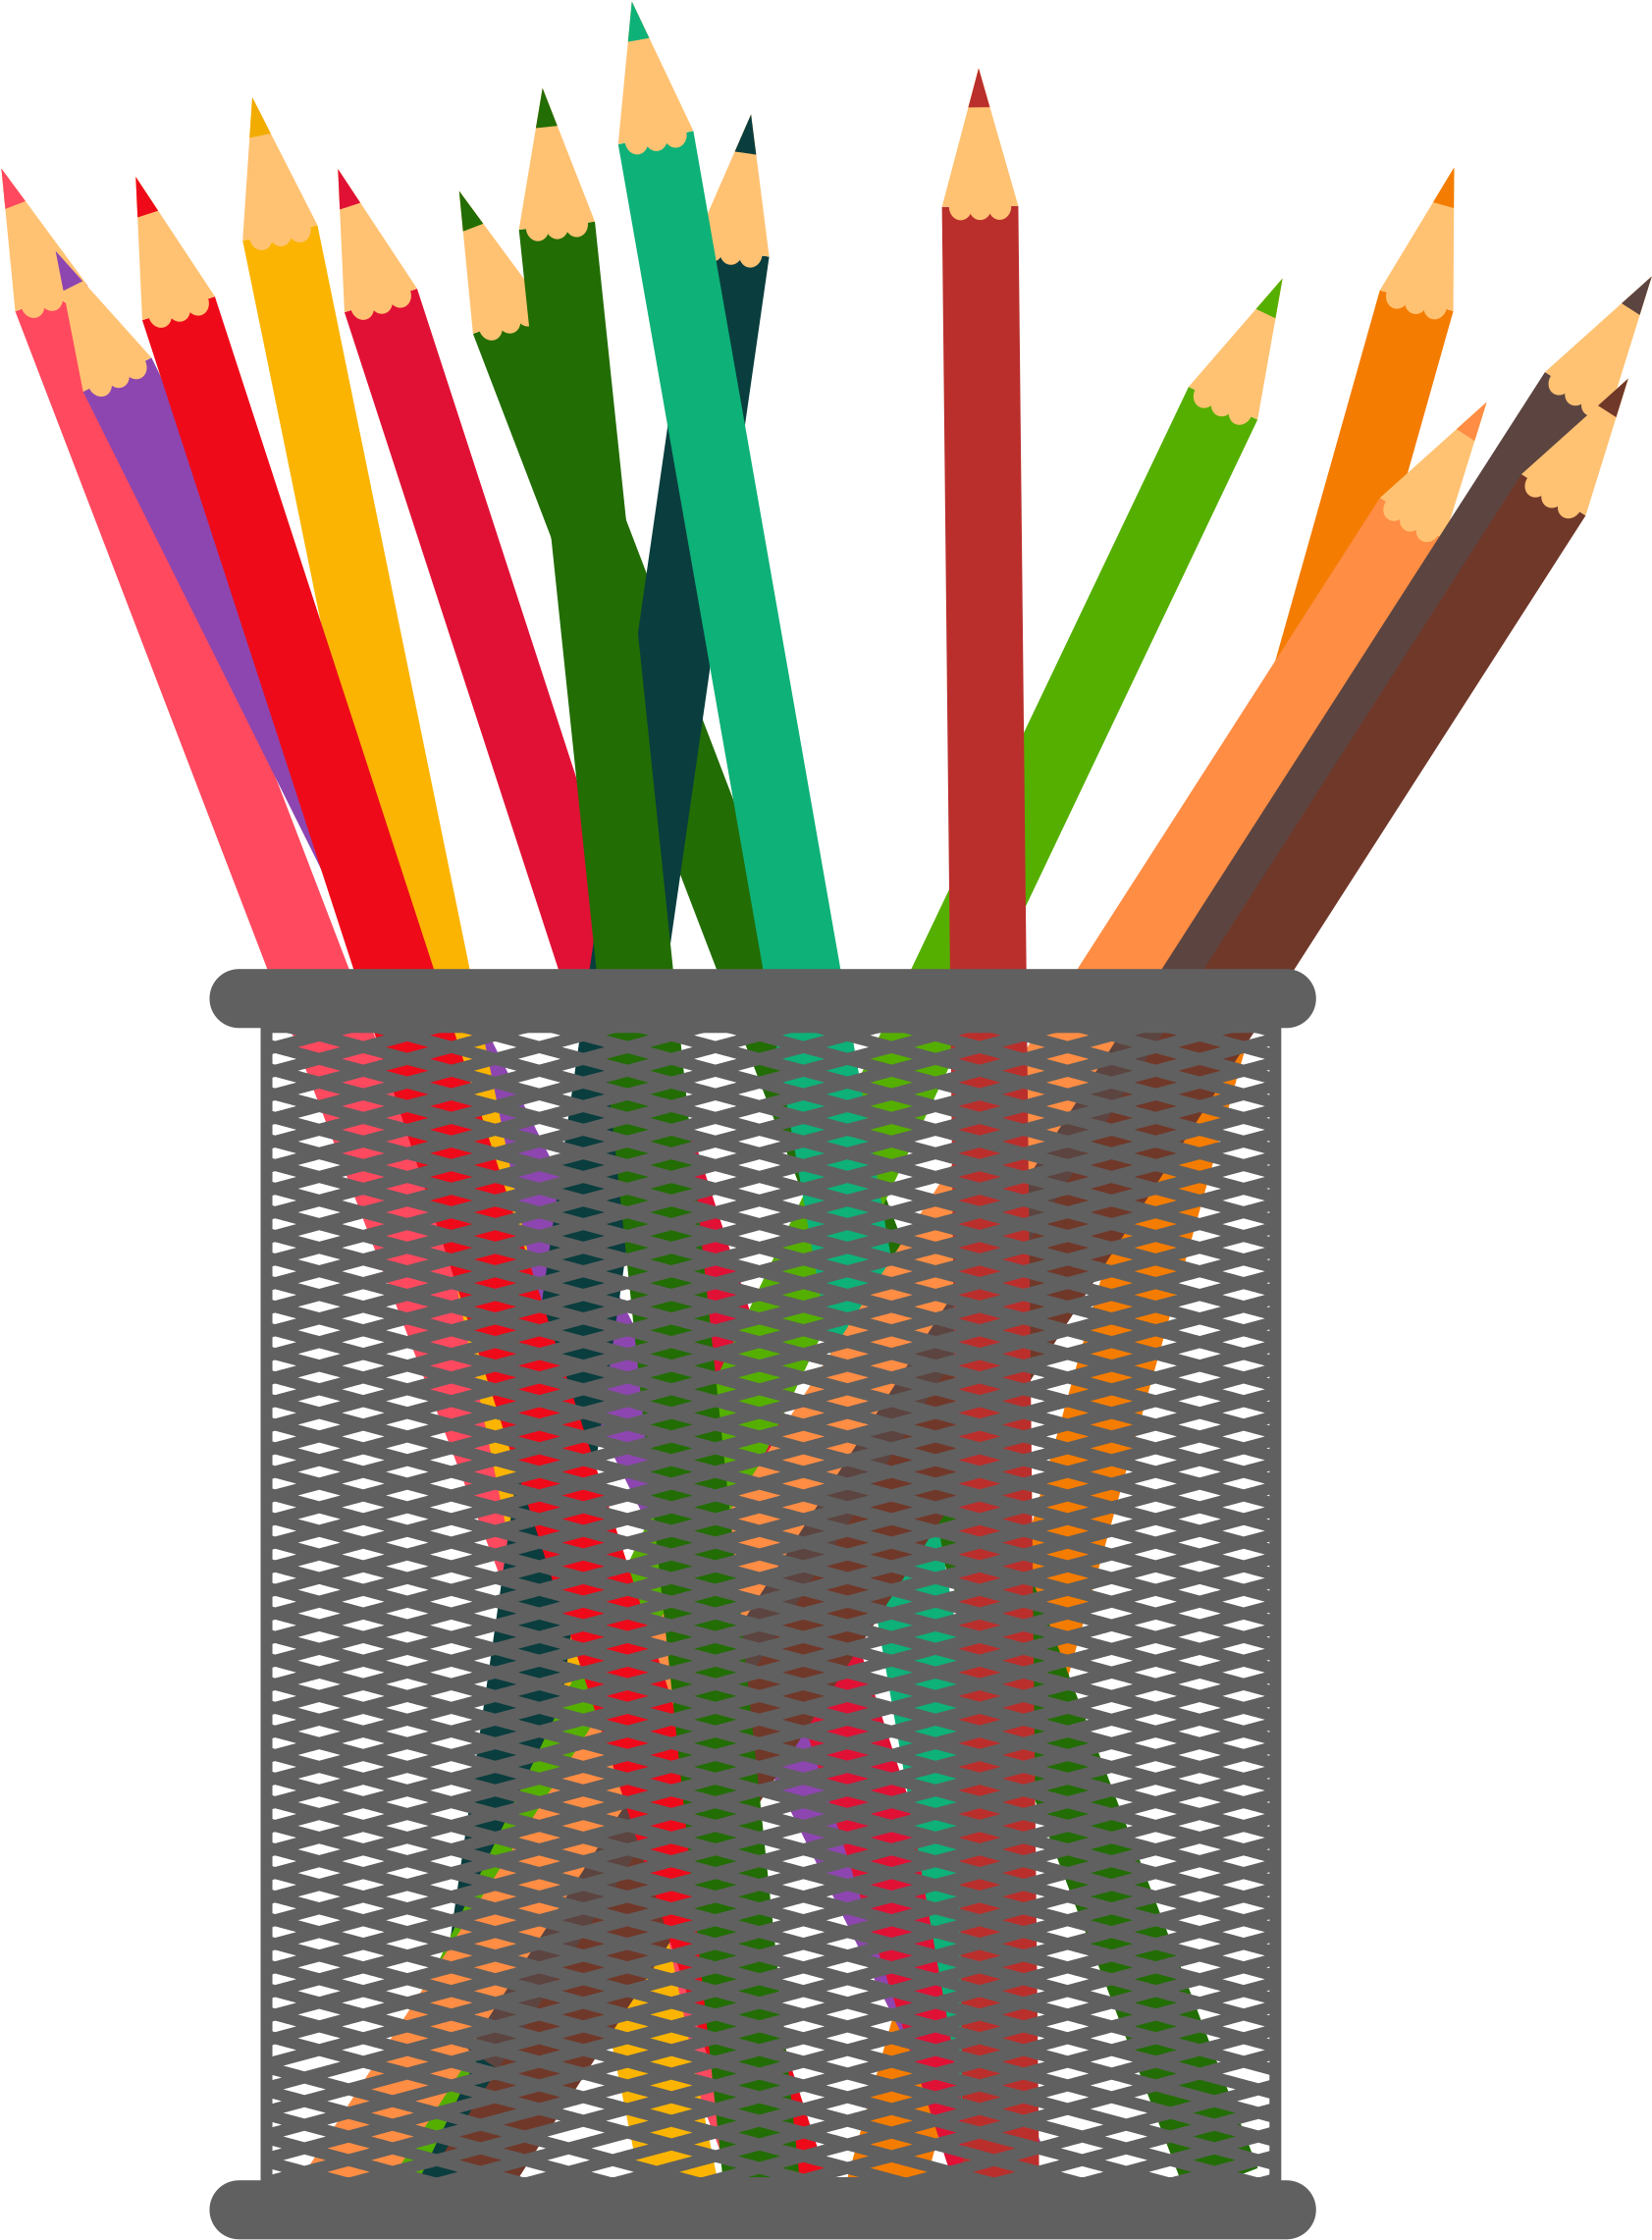 Transparent pencil clipart - Pencil Clipart Pen - Pens And Pencils Clipart